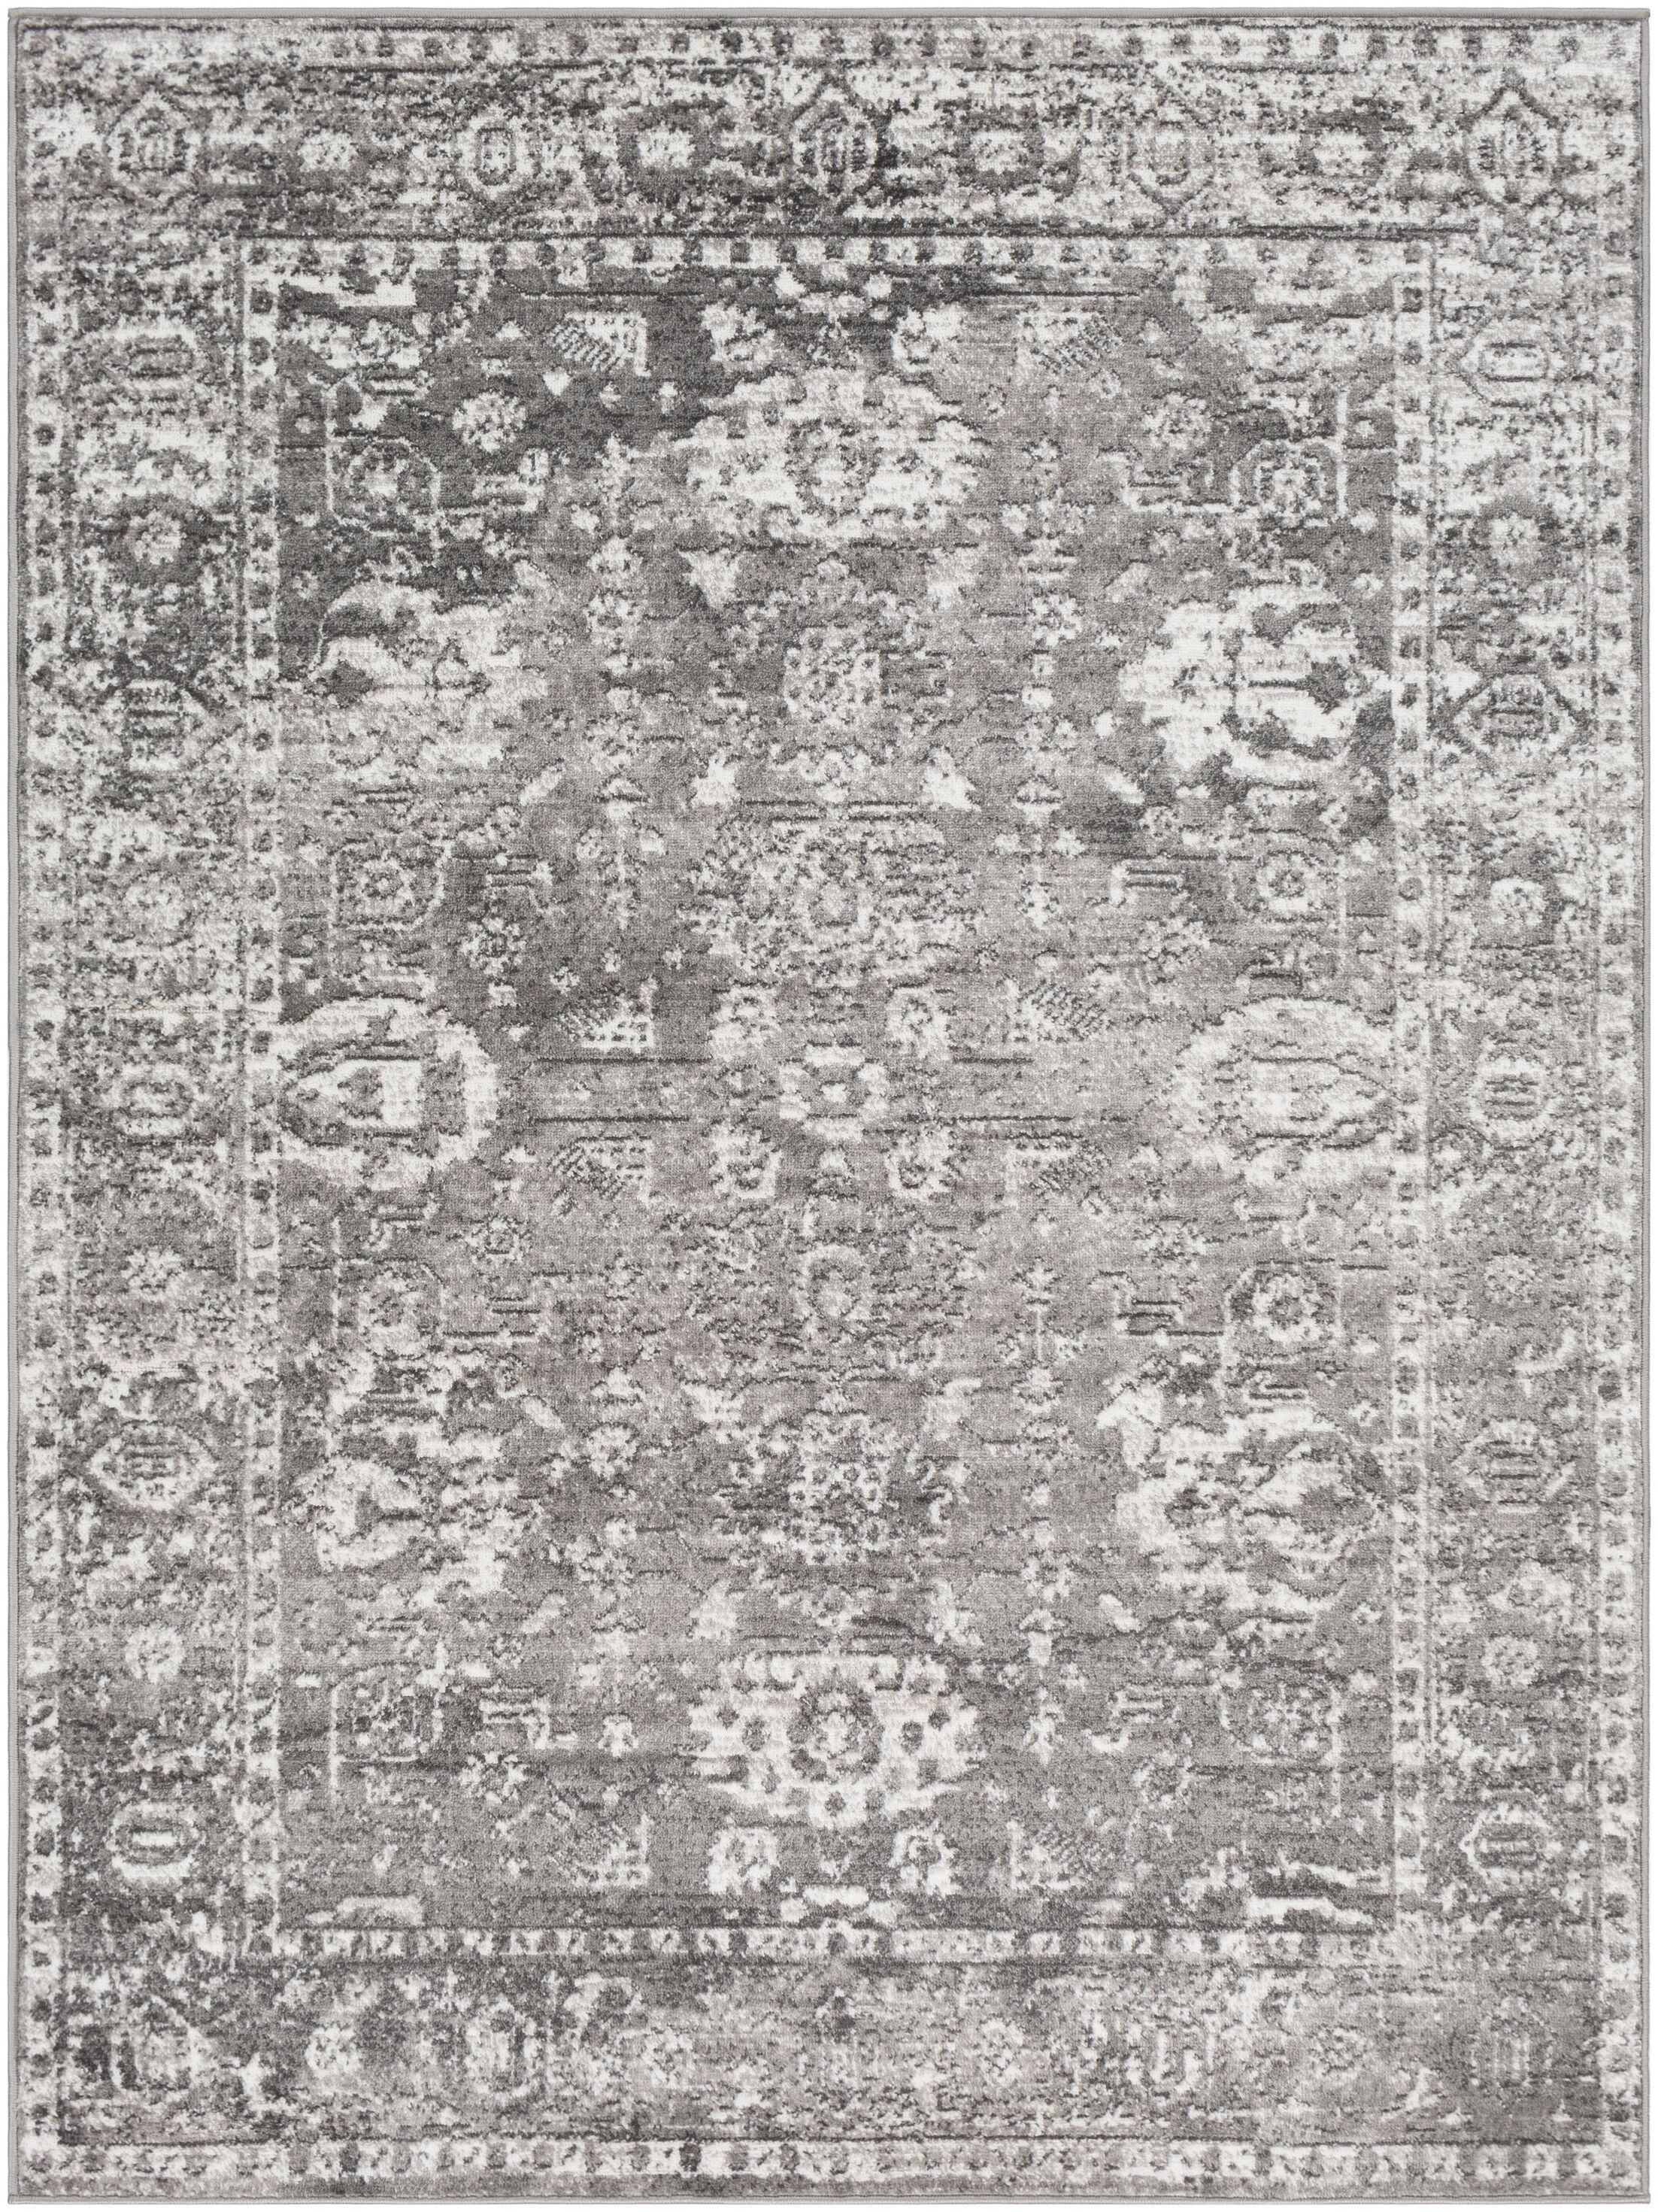 Ranck Distressed Vintage Light Gray/Gray Area Rug Rug Size: Rectangle 5'3